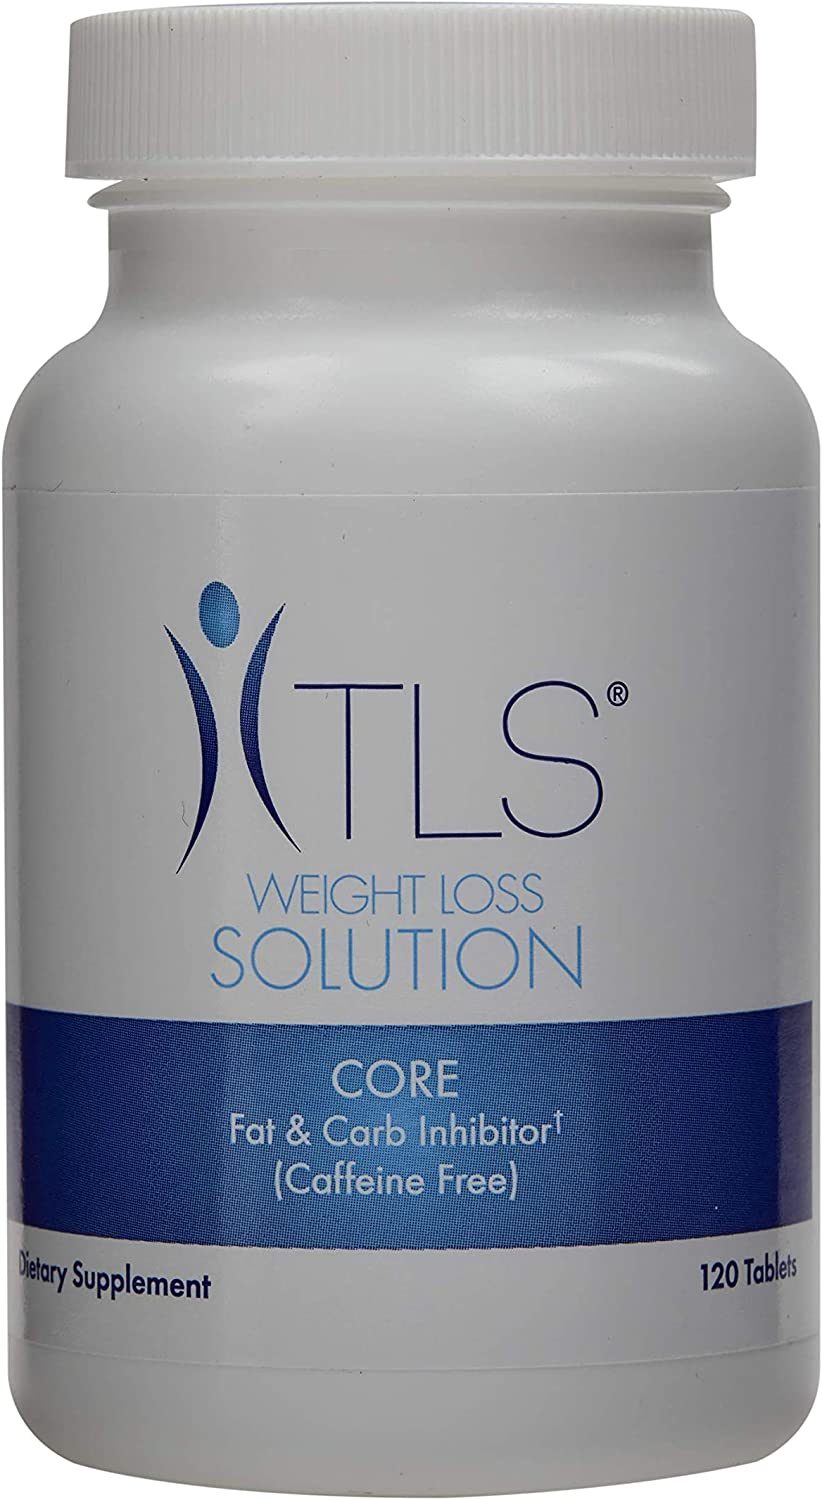 TLS CORE Fat Max 45% OFF Carb Inhibitor Regular discount Weightloss Help Solution Sup May